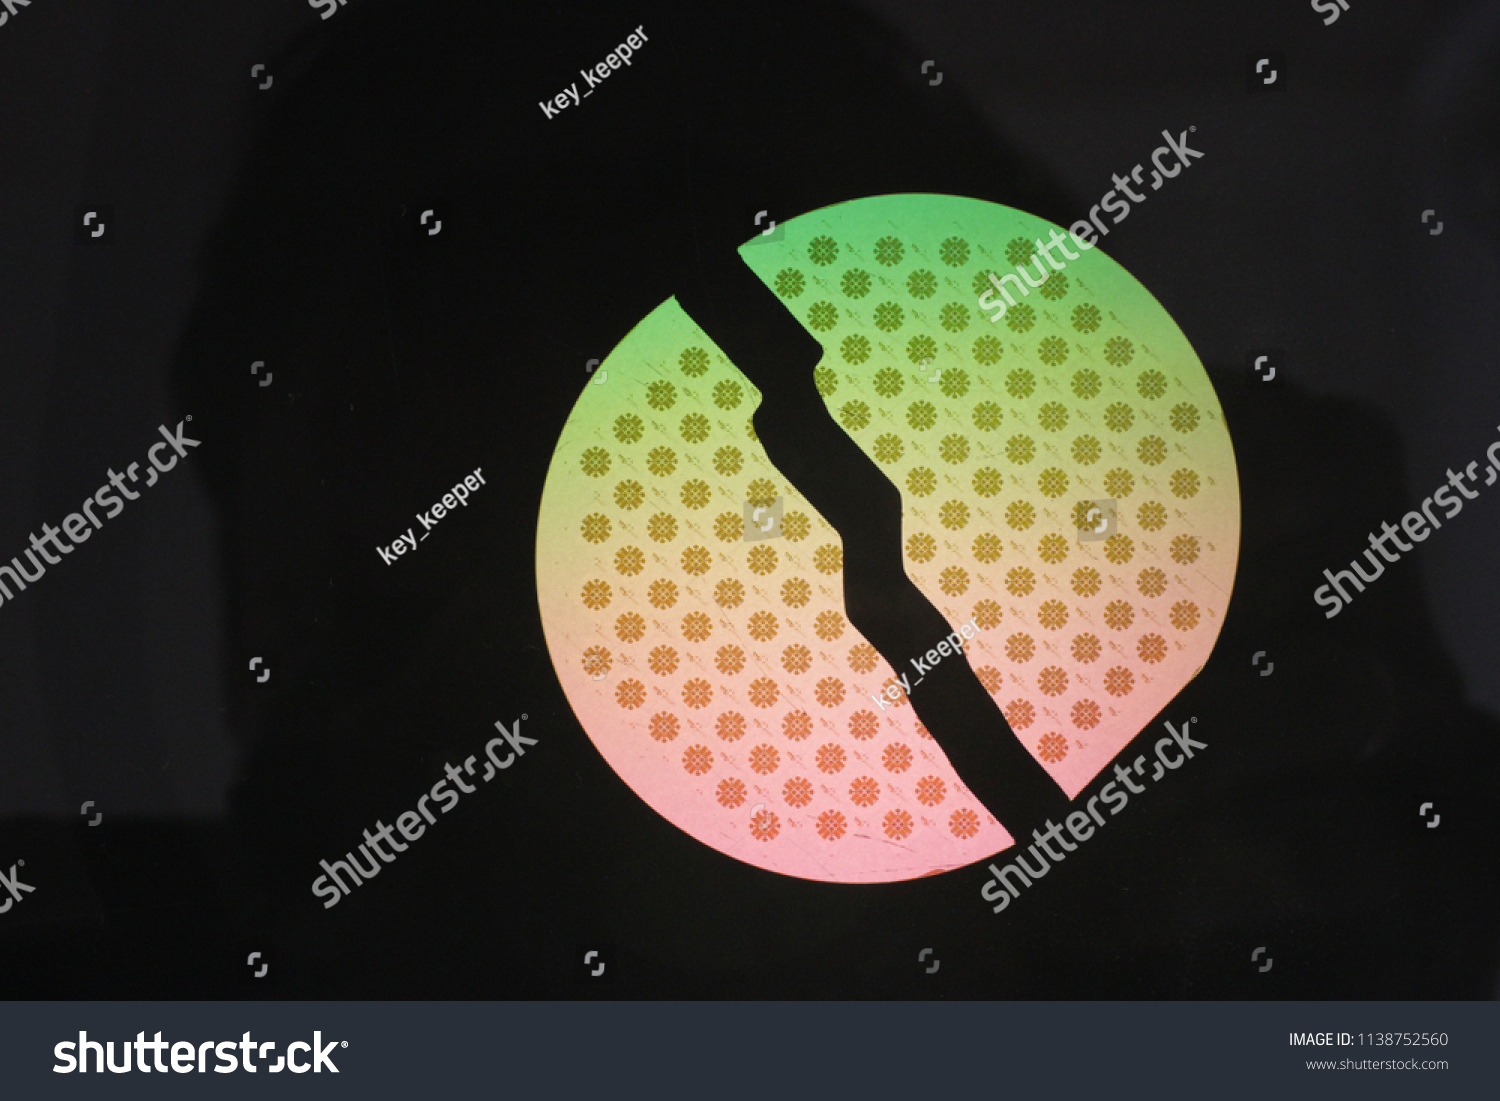 Semiconductor Structures Silicon On Sapphire Broken Stock Photo Integrated Circuits Crystals The Of Are In Half And Illuminated By Polarized Source